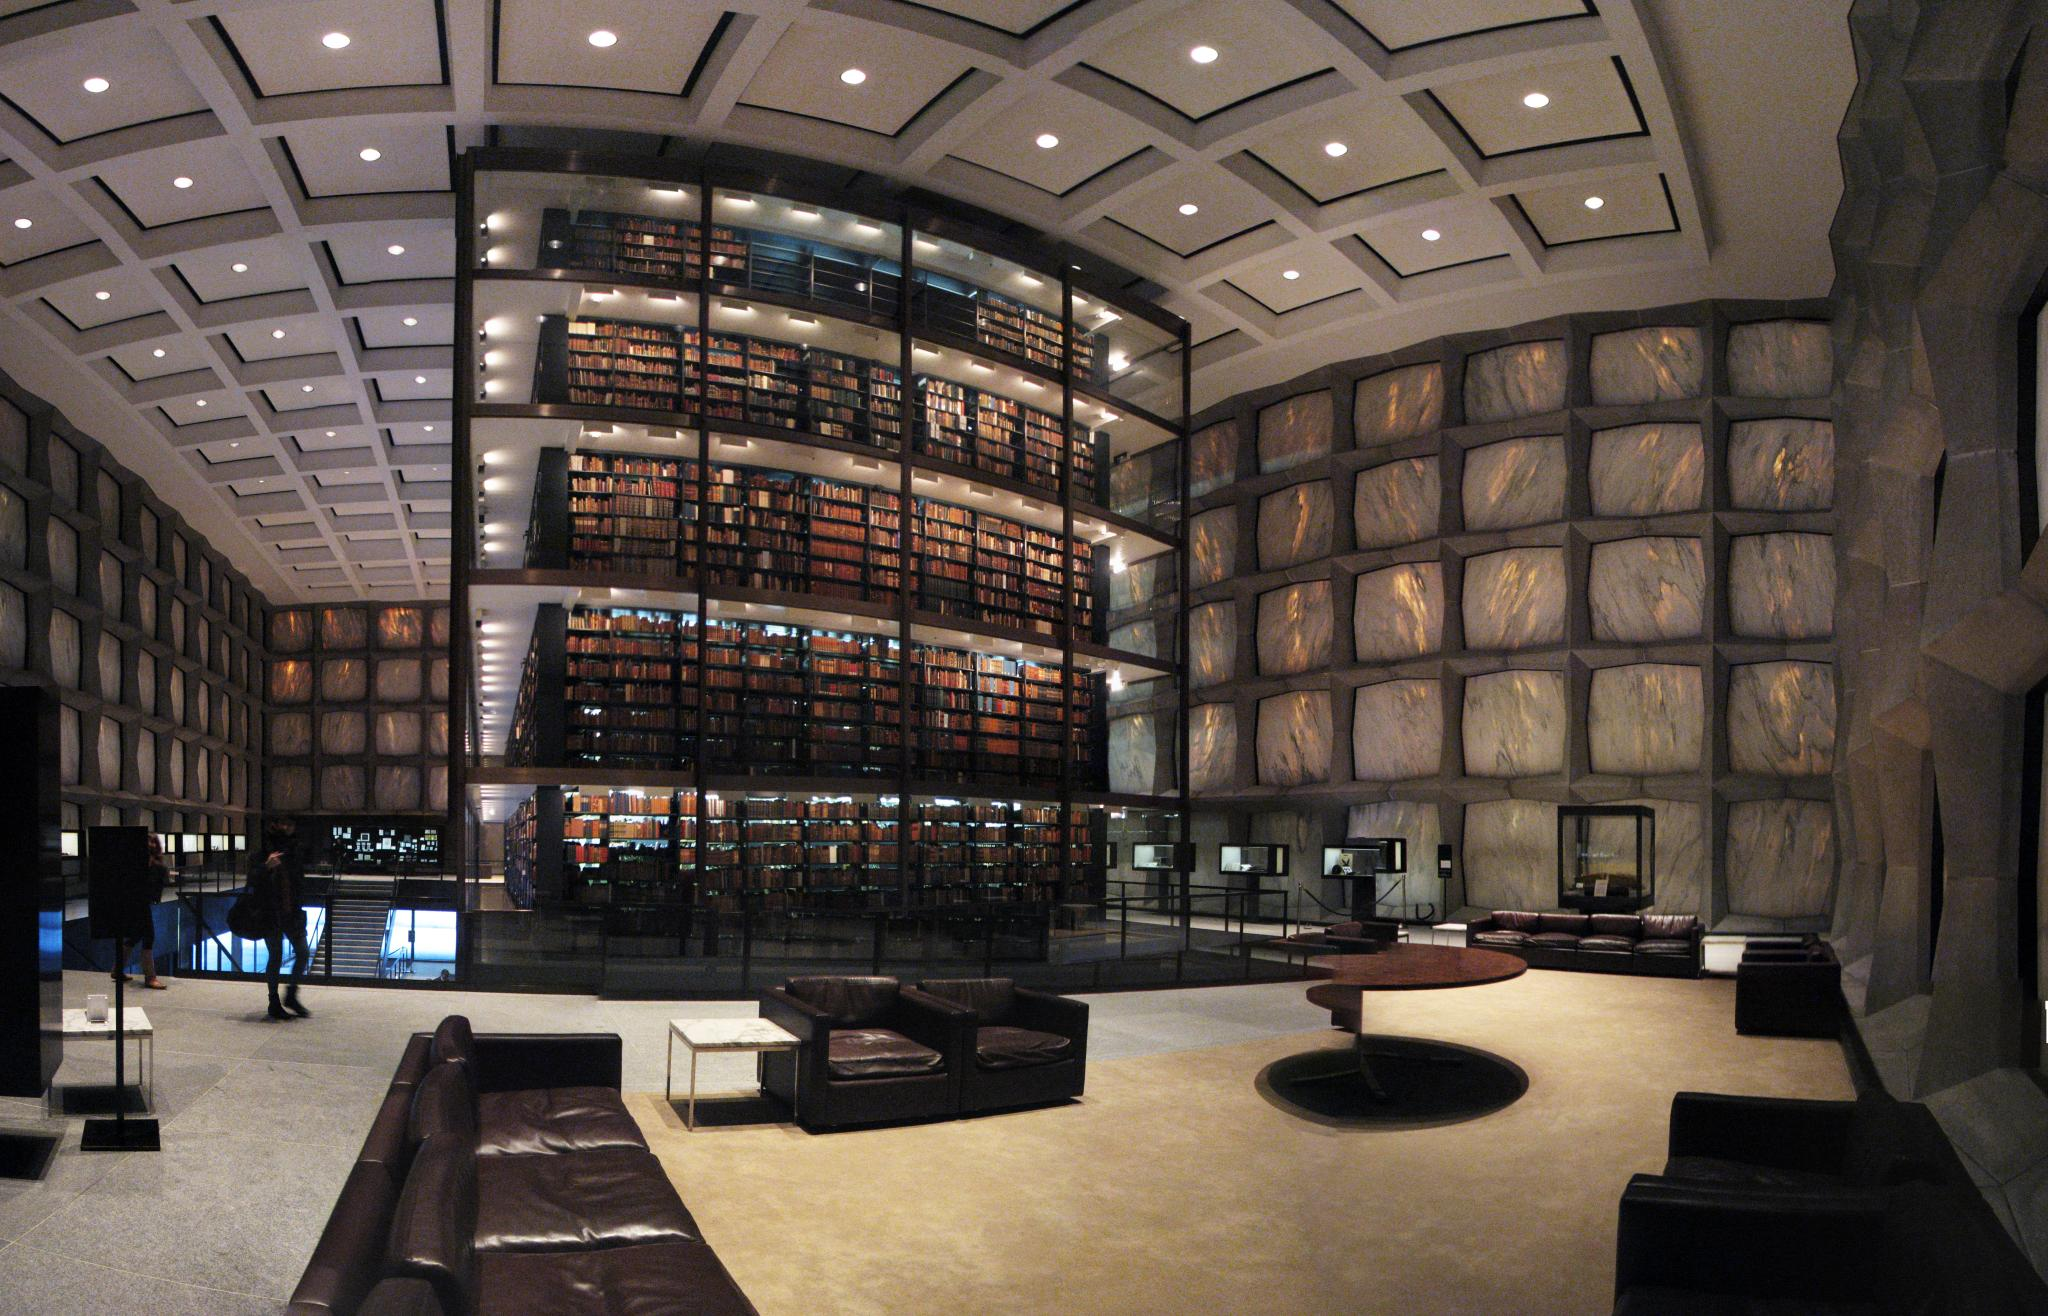 """I'm gonna need to read all these.""""Yale University's Beinecke Rare Book and Manuscript Library"""" by Lauren Manning - Flickr: Yale University's Beinecke Rare Book and Manuscript Library. Licensed under CC BY 2.0 via  Wikimedia Commons ."""